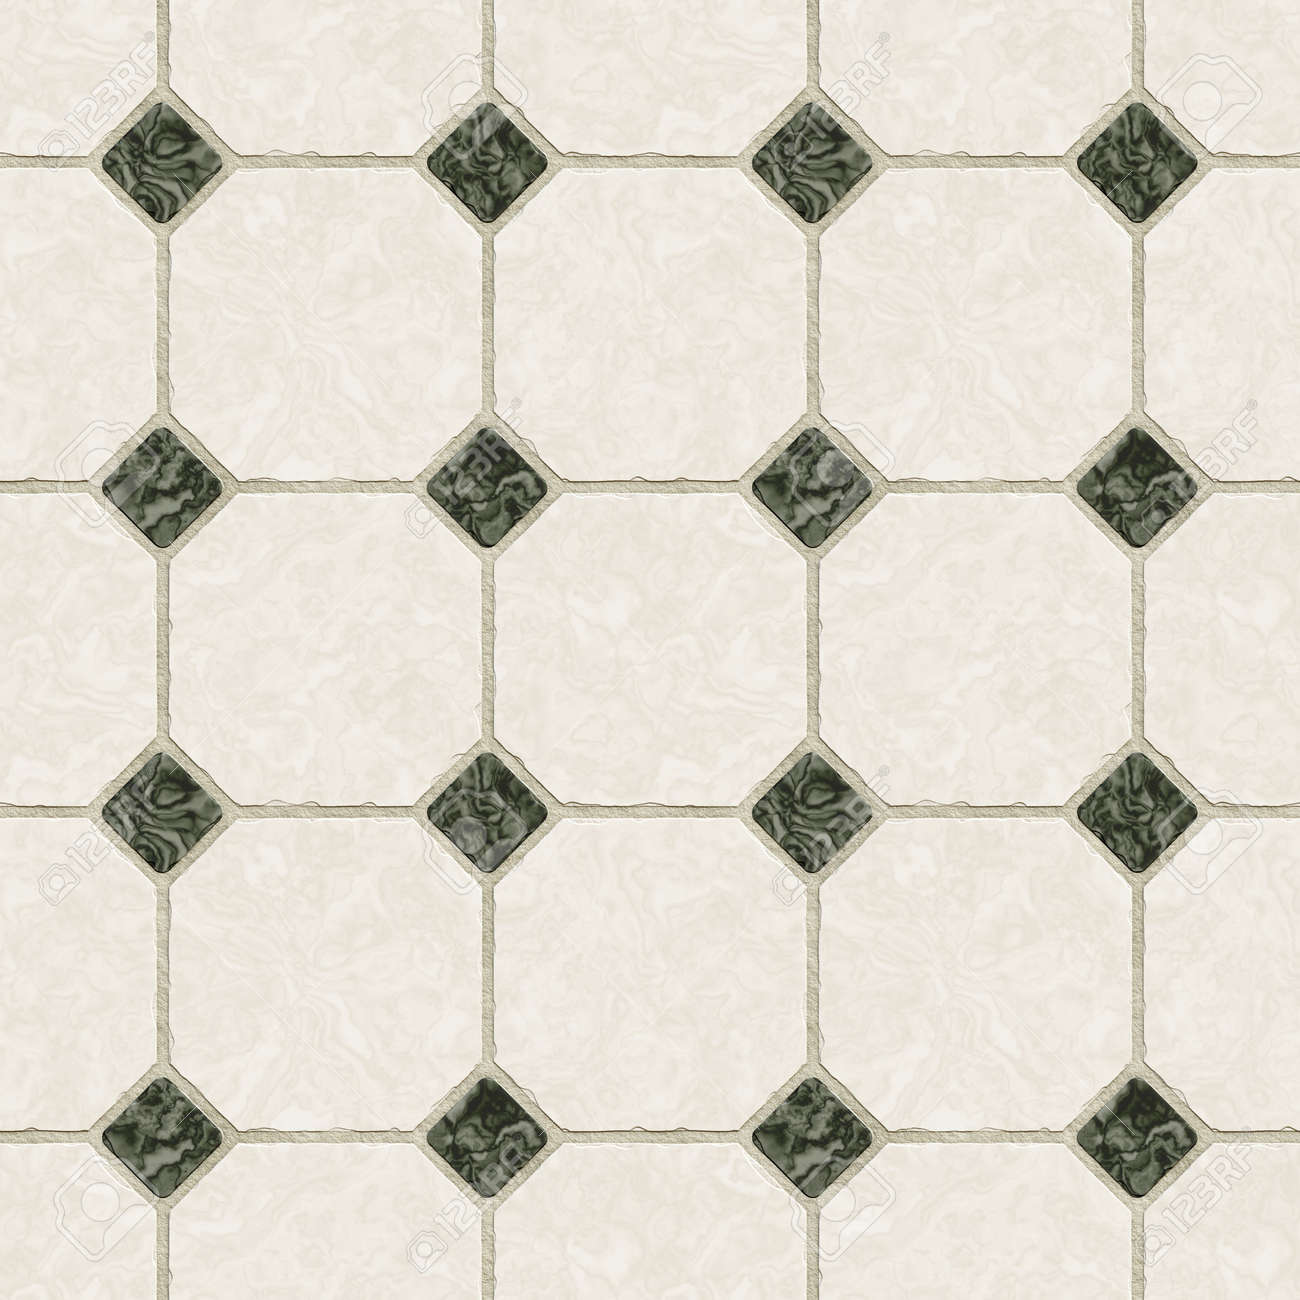 A Seamless Tiling Texture. Illustration Of An Area Of Floor Tiles ...